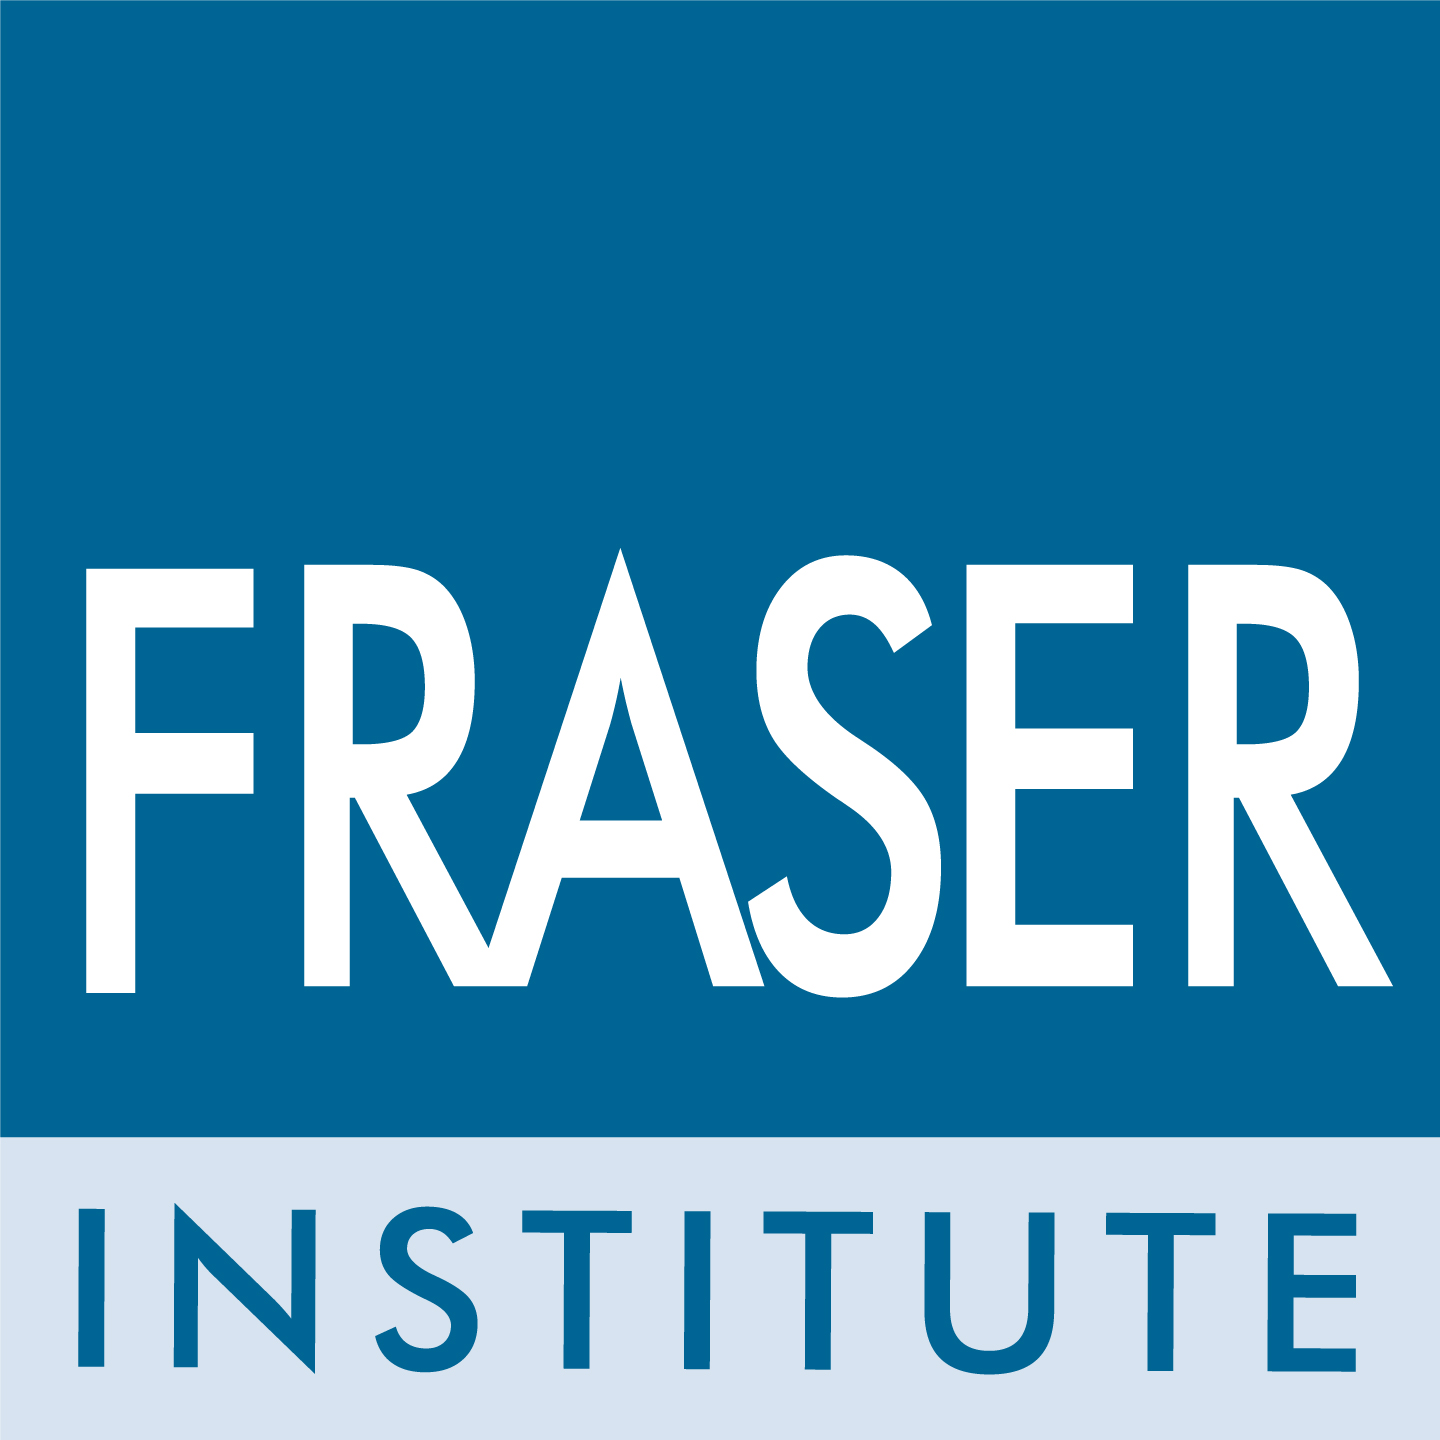 Fraser Institute Media Advisory: New study on CEO compensation coming Friday, Jan